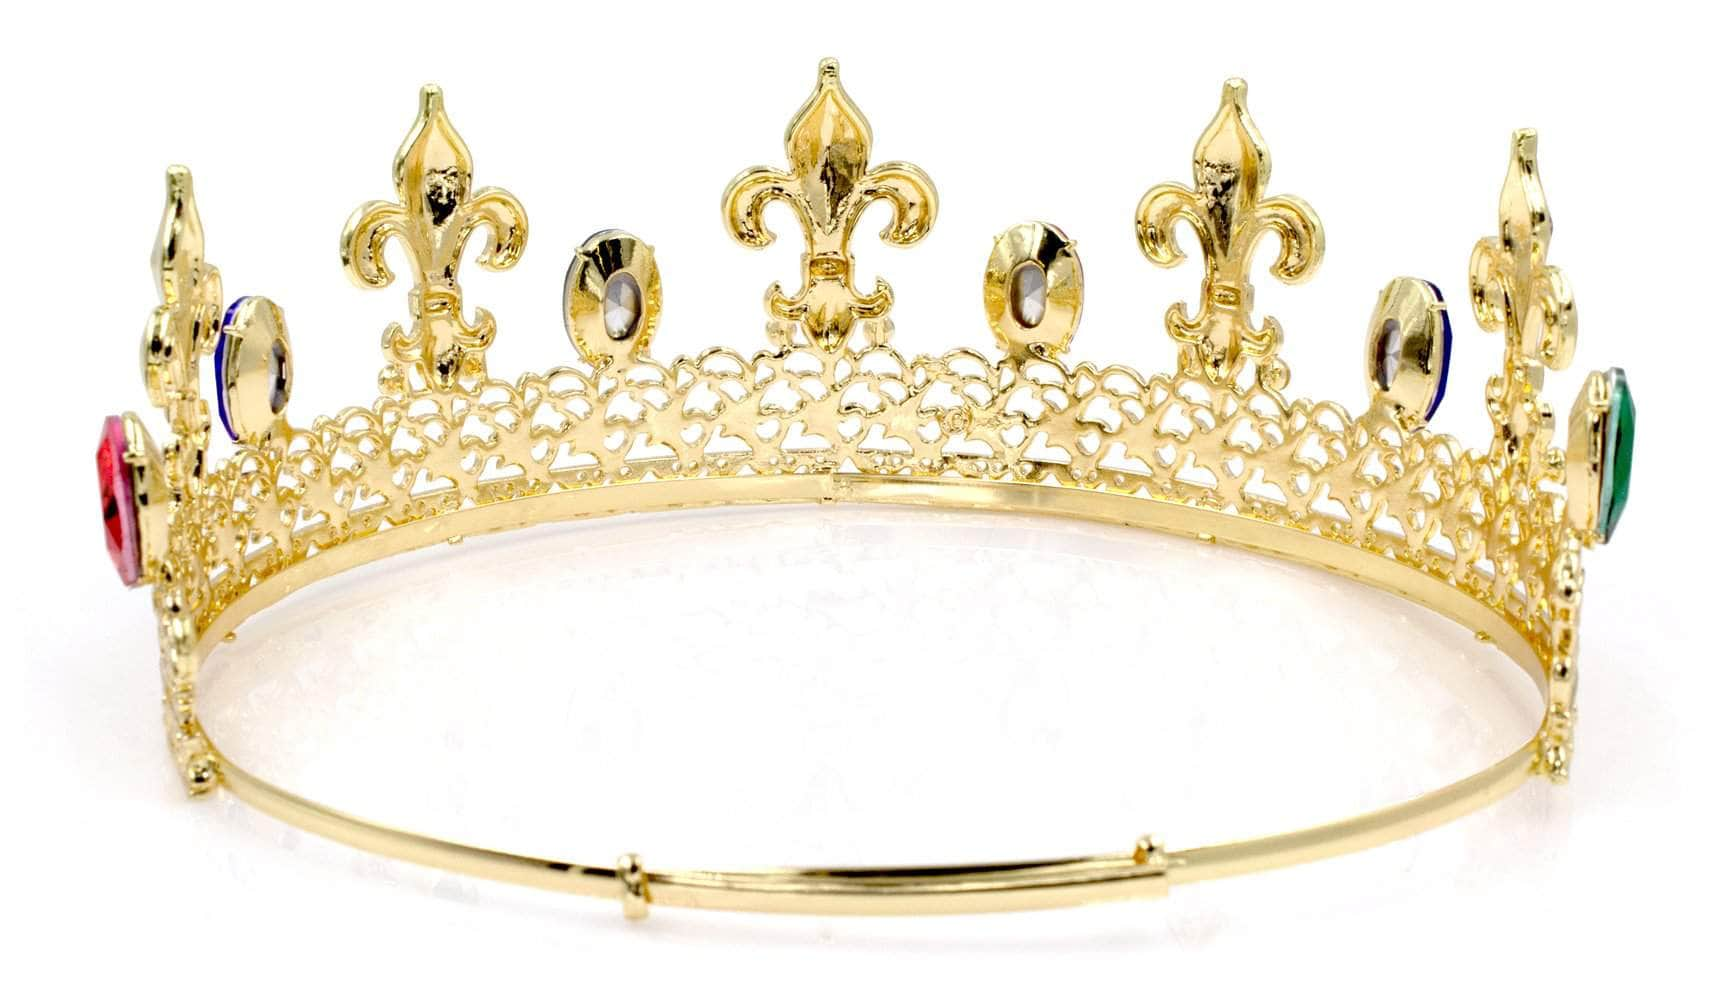 Men's Crowns and Scepters Prom King Crown #17005 - Gold (Limited Quantity)